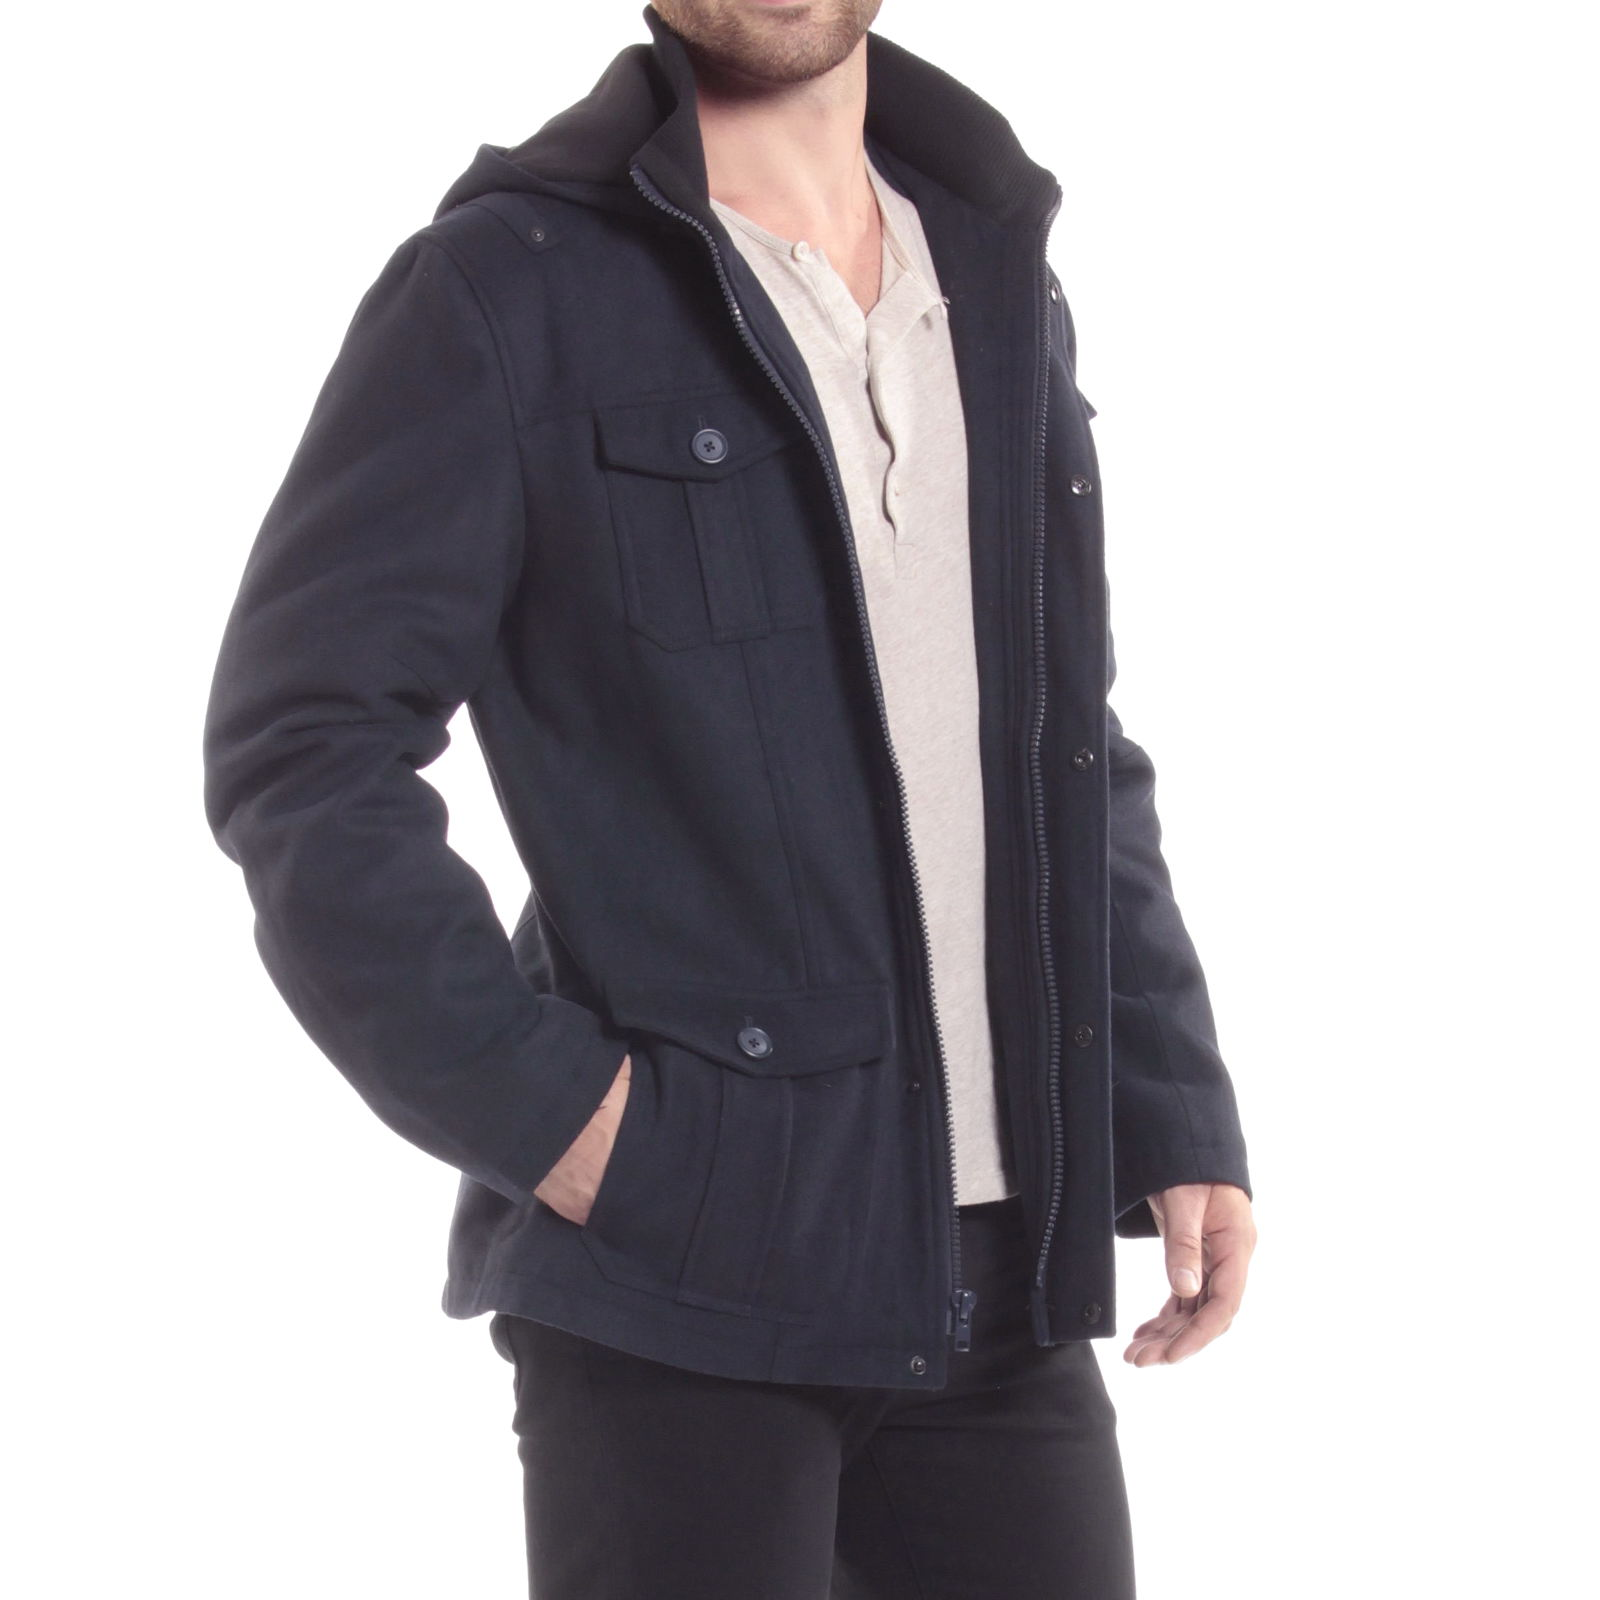 Alpine-Swiss-Noah-Mens-Wool-Coat-Parka-with-Removable-Hood-Jacket-Cargo-Pockets